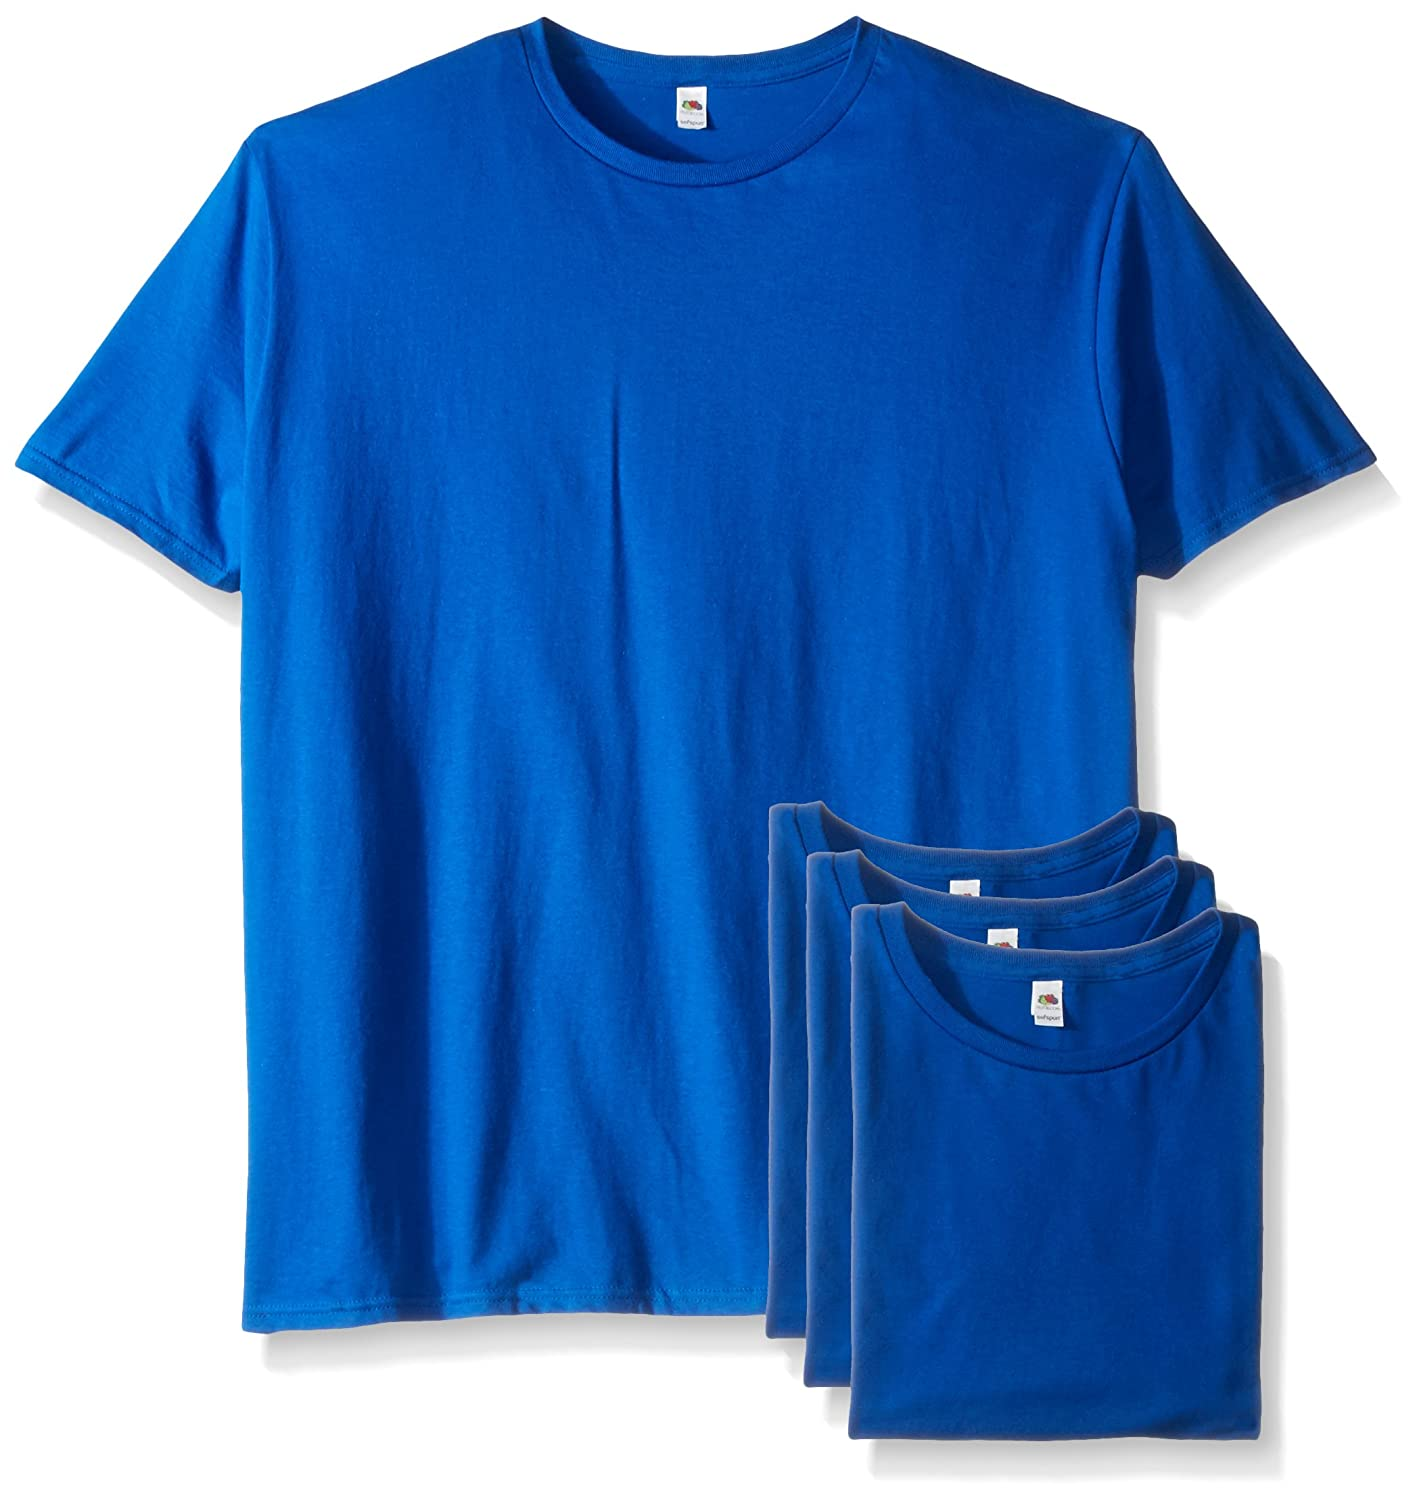 Fruit of the Loom Mens Athletic SF45R4P Fruit of the Loom Mens Crew T-Shirt 4 Pack